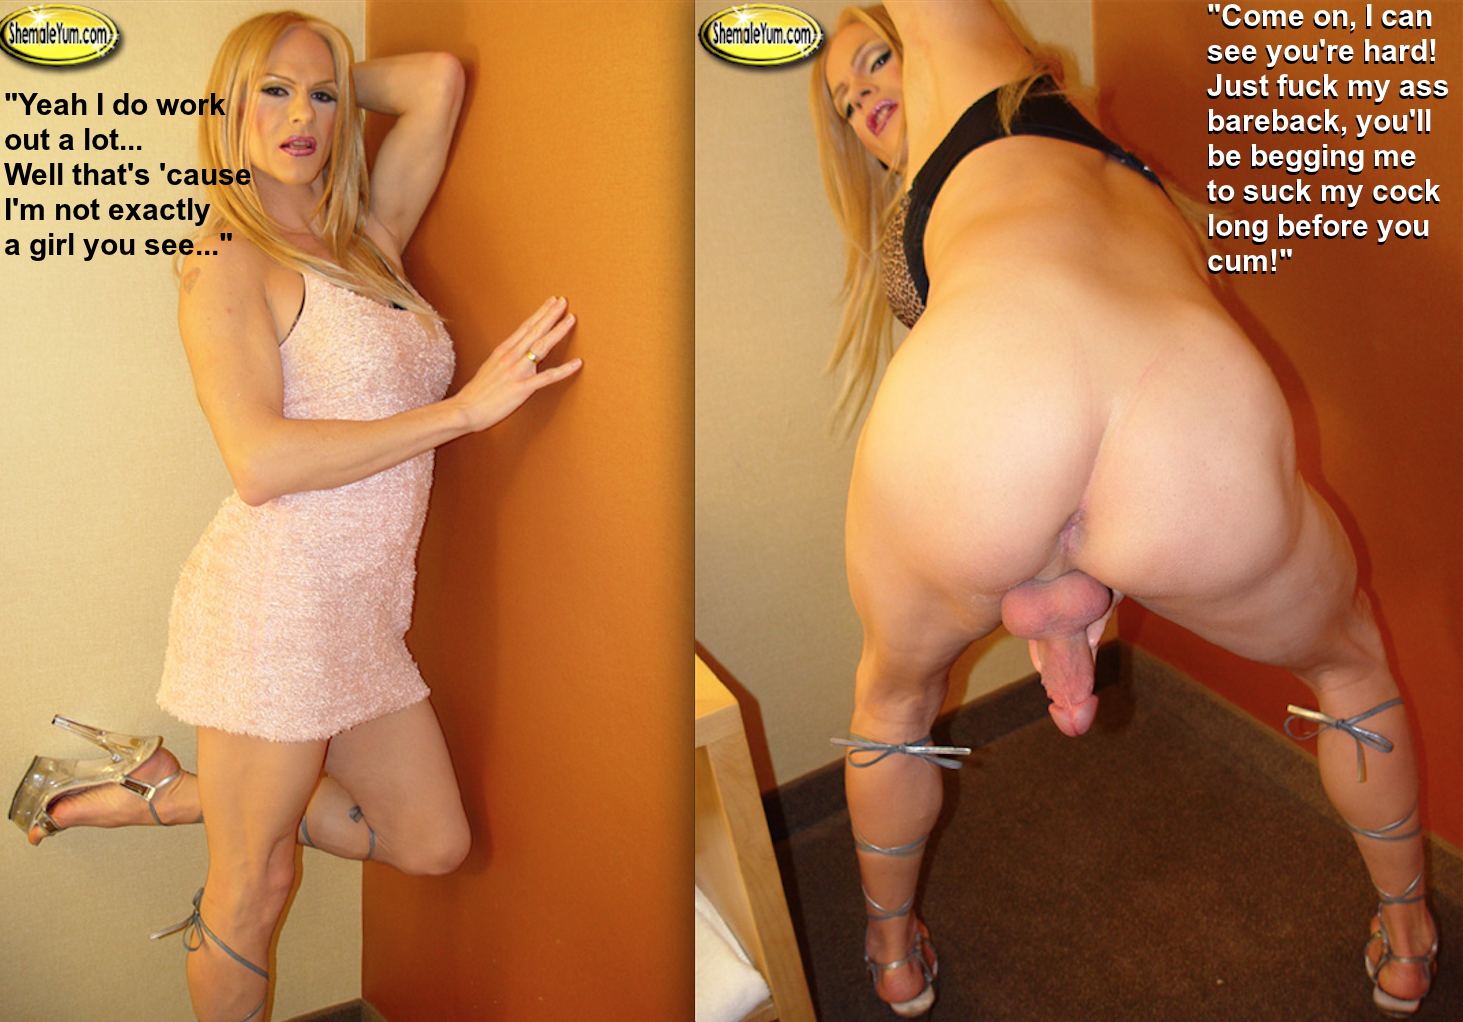 Big Shemale Surprise Porn - Surprise shemale dick - Quality Porno Free image. Comments: 1